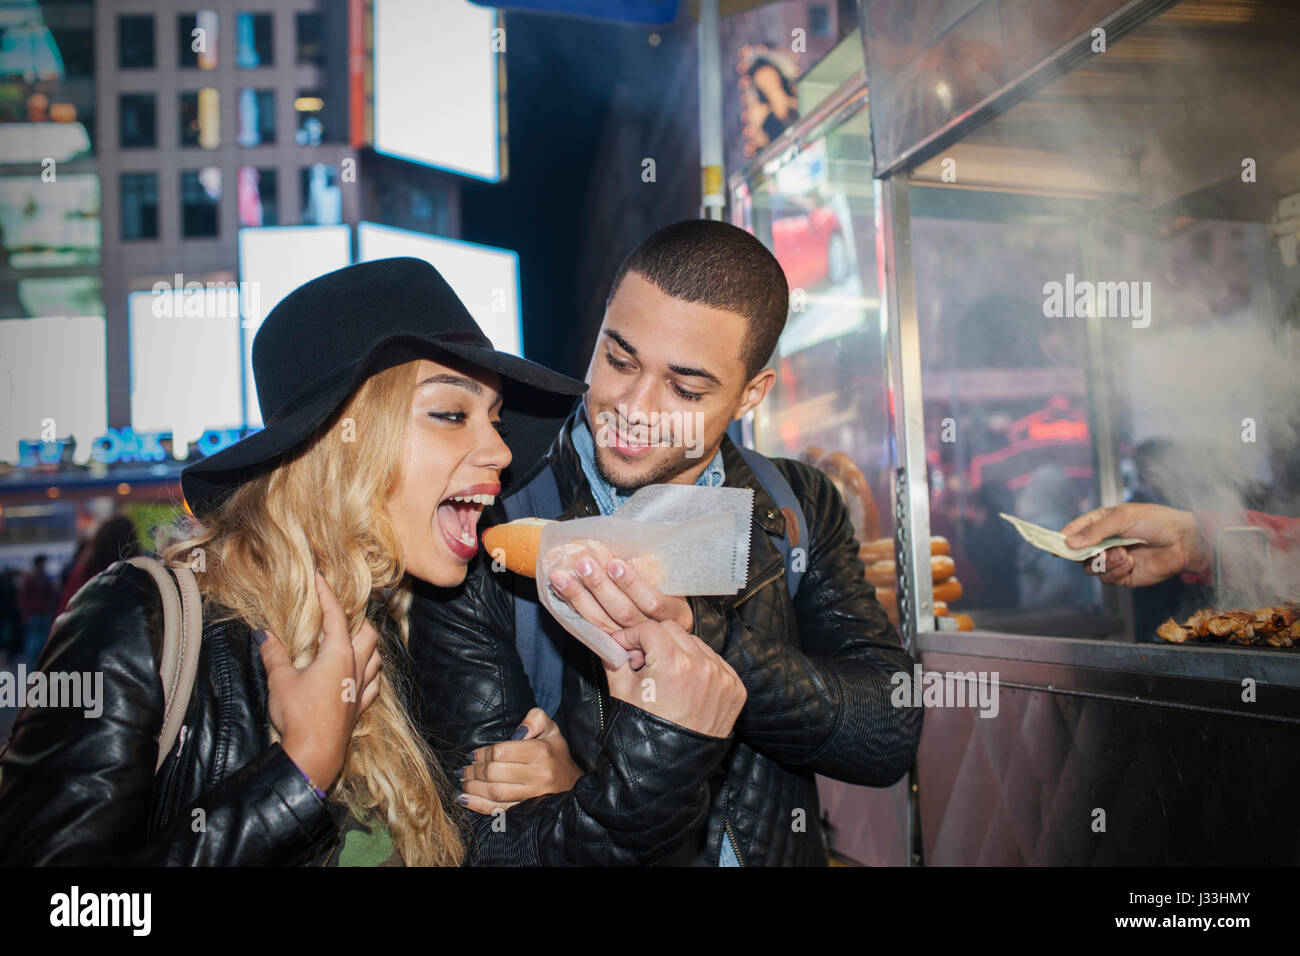 Young couple eating street food - Stock Image